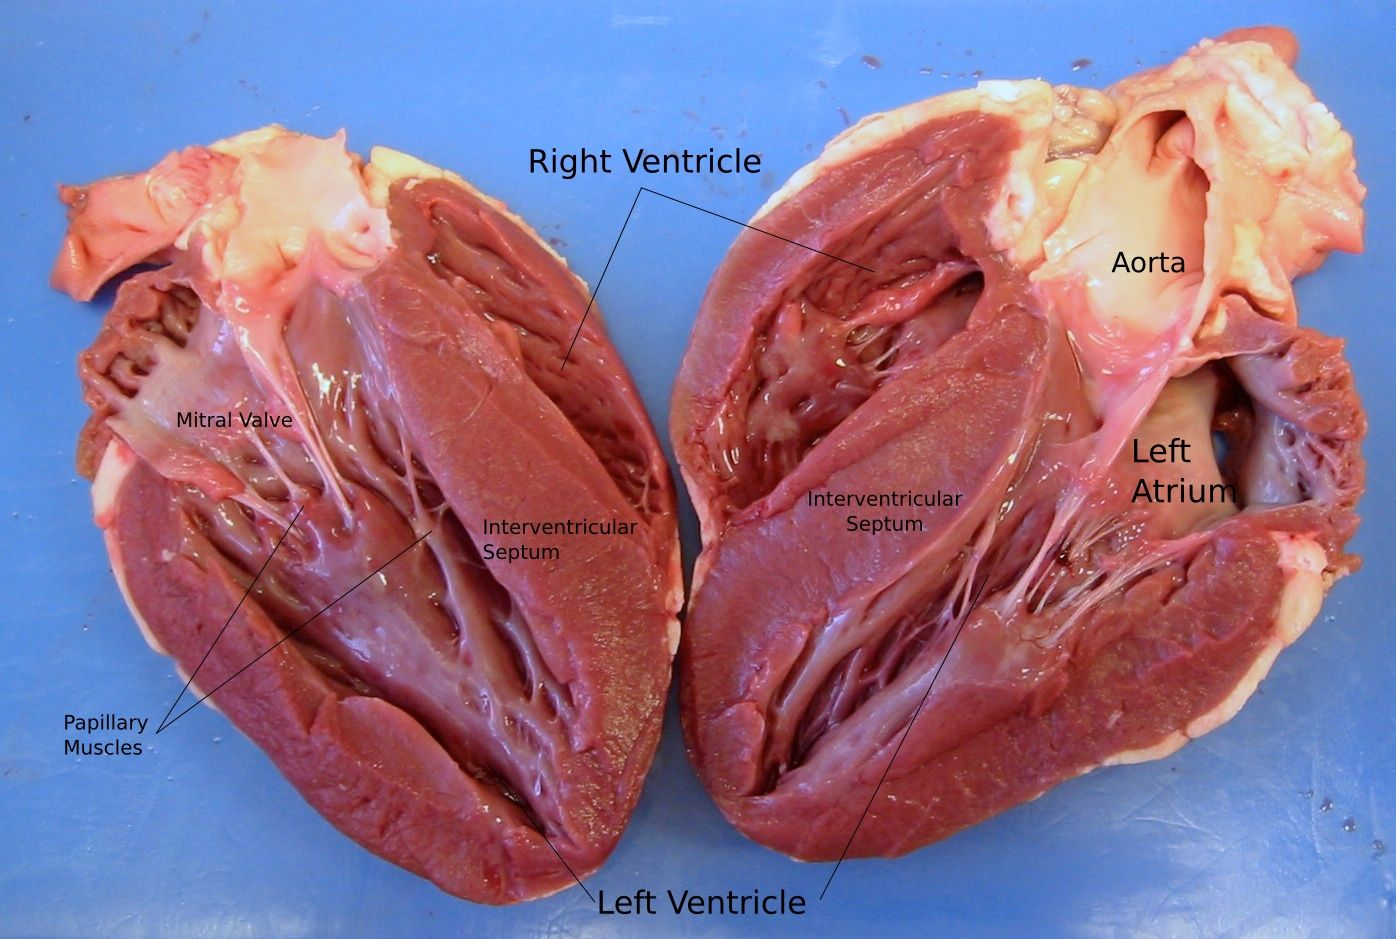 Lamb Heart Dissection | Teaching - Labs | Pinterest | Lamb and Heart